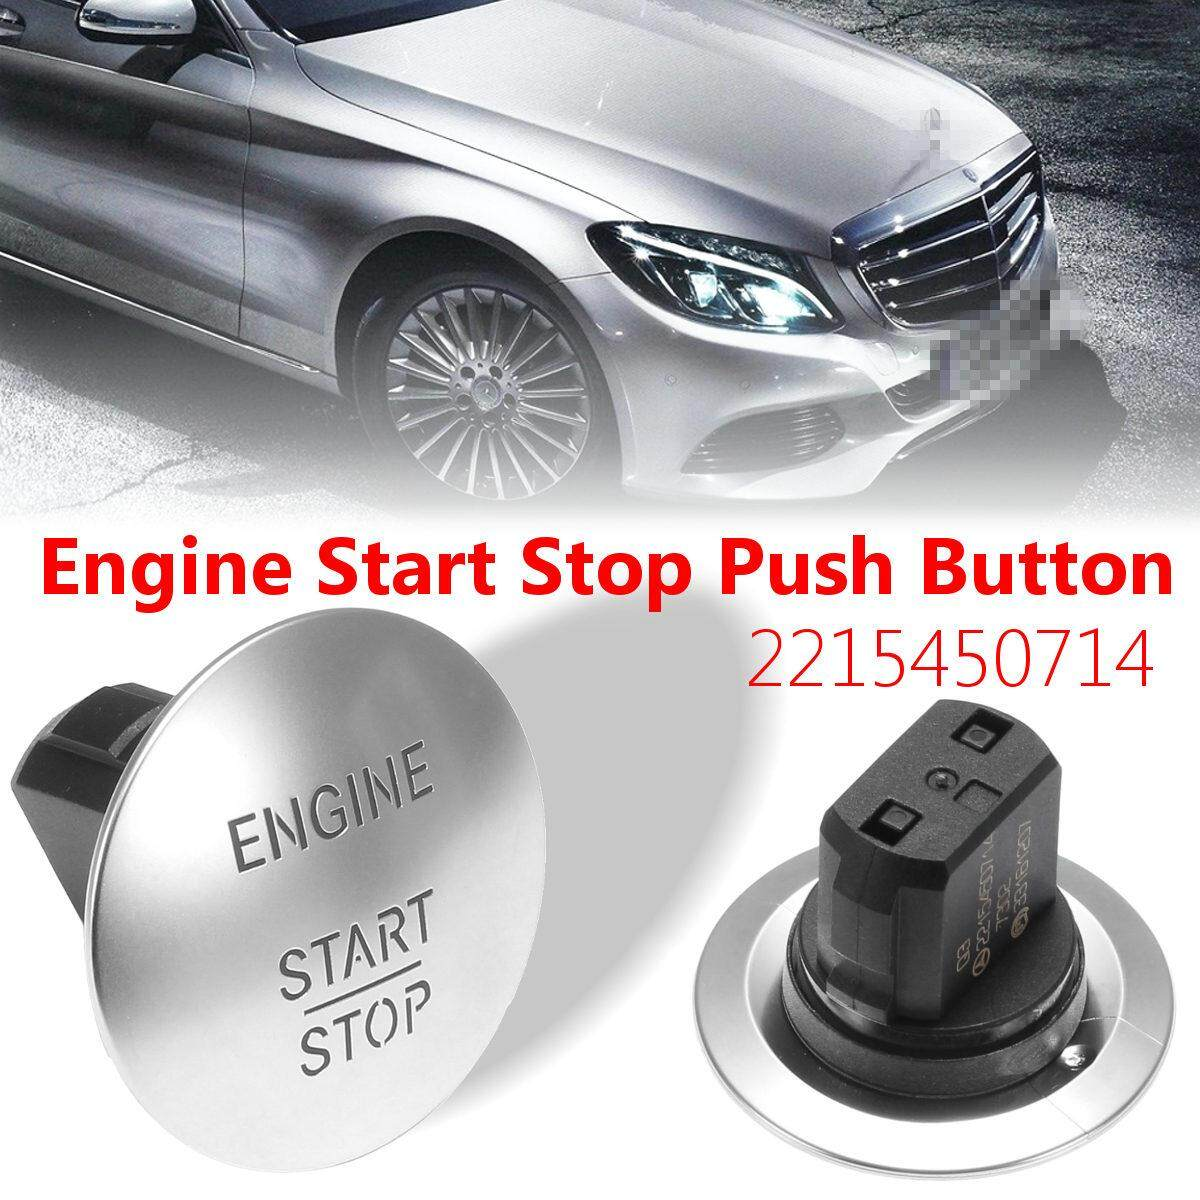 Features Keyless Go Engine Start Stop Push Button Ignition Switch Mercedes Benz For 2215450714 5